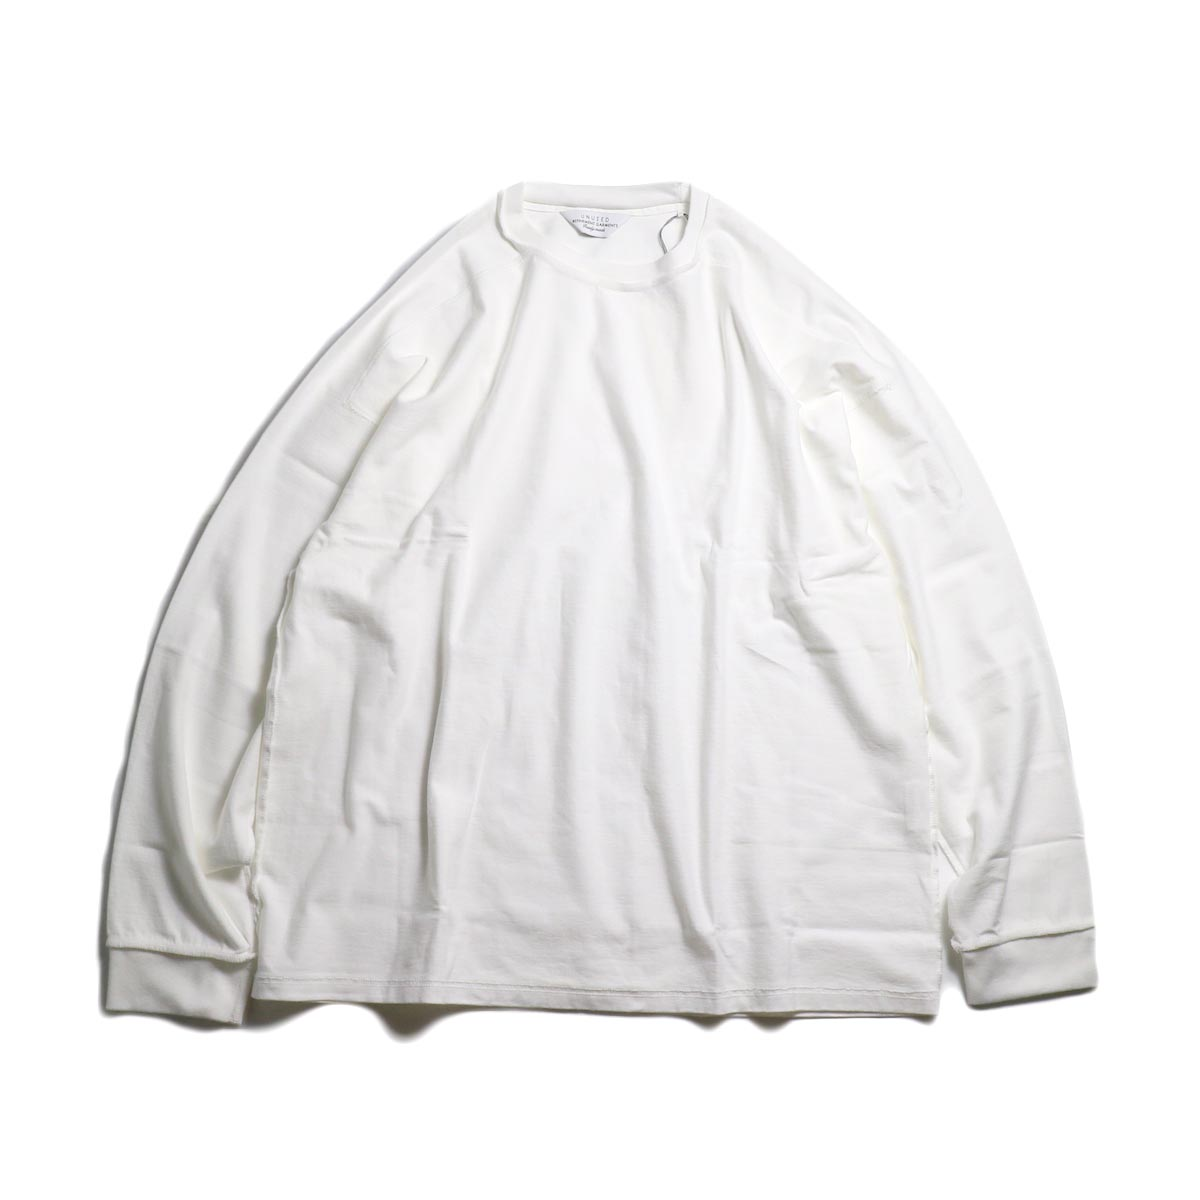 UNUSED / US1686 Long Sleeve T-Shirt -White